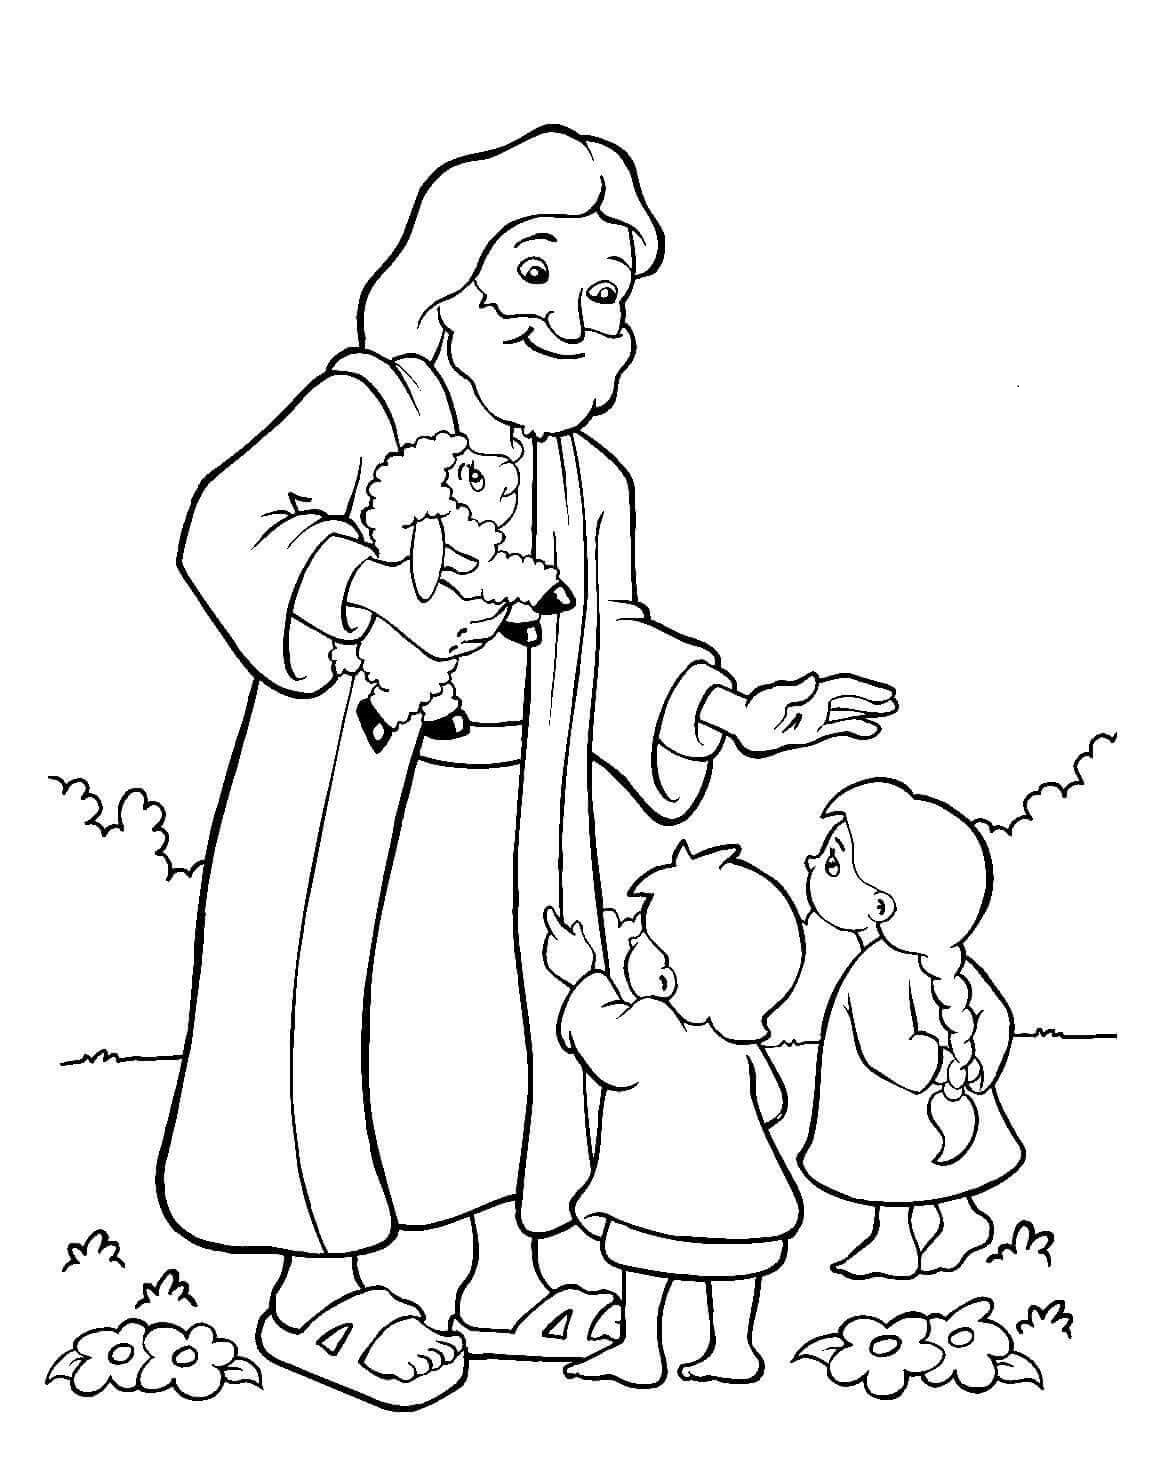 jesus coloring sheets jesus on cross coloring page coloring home jesus coloring sheets